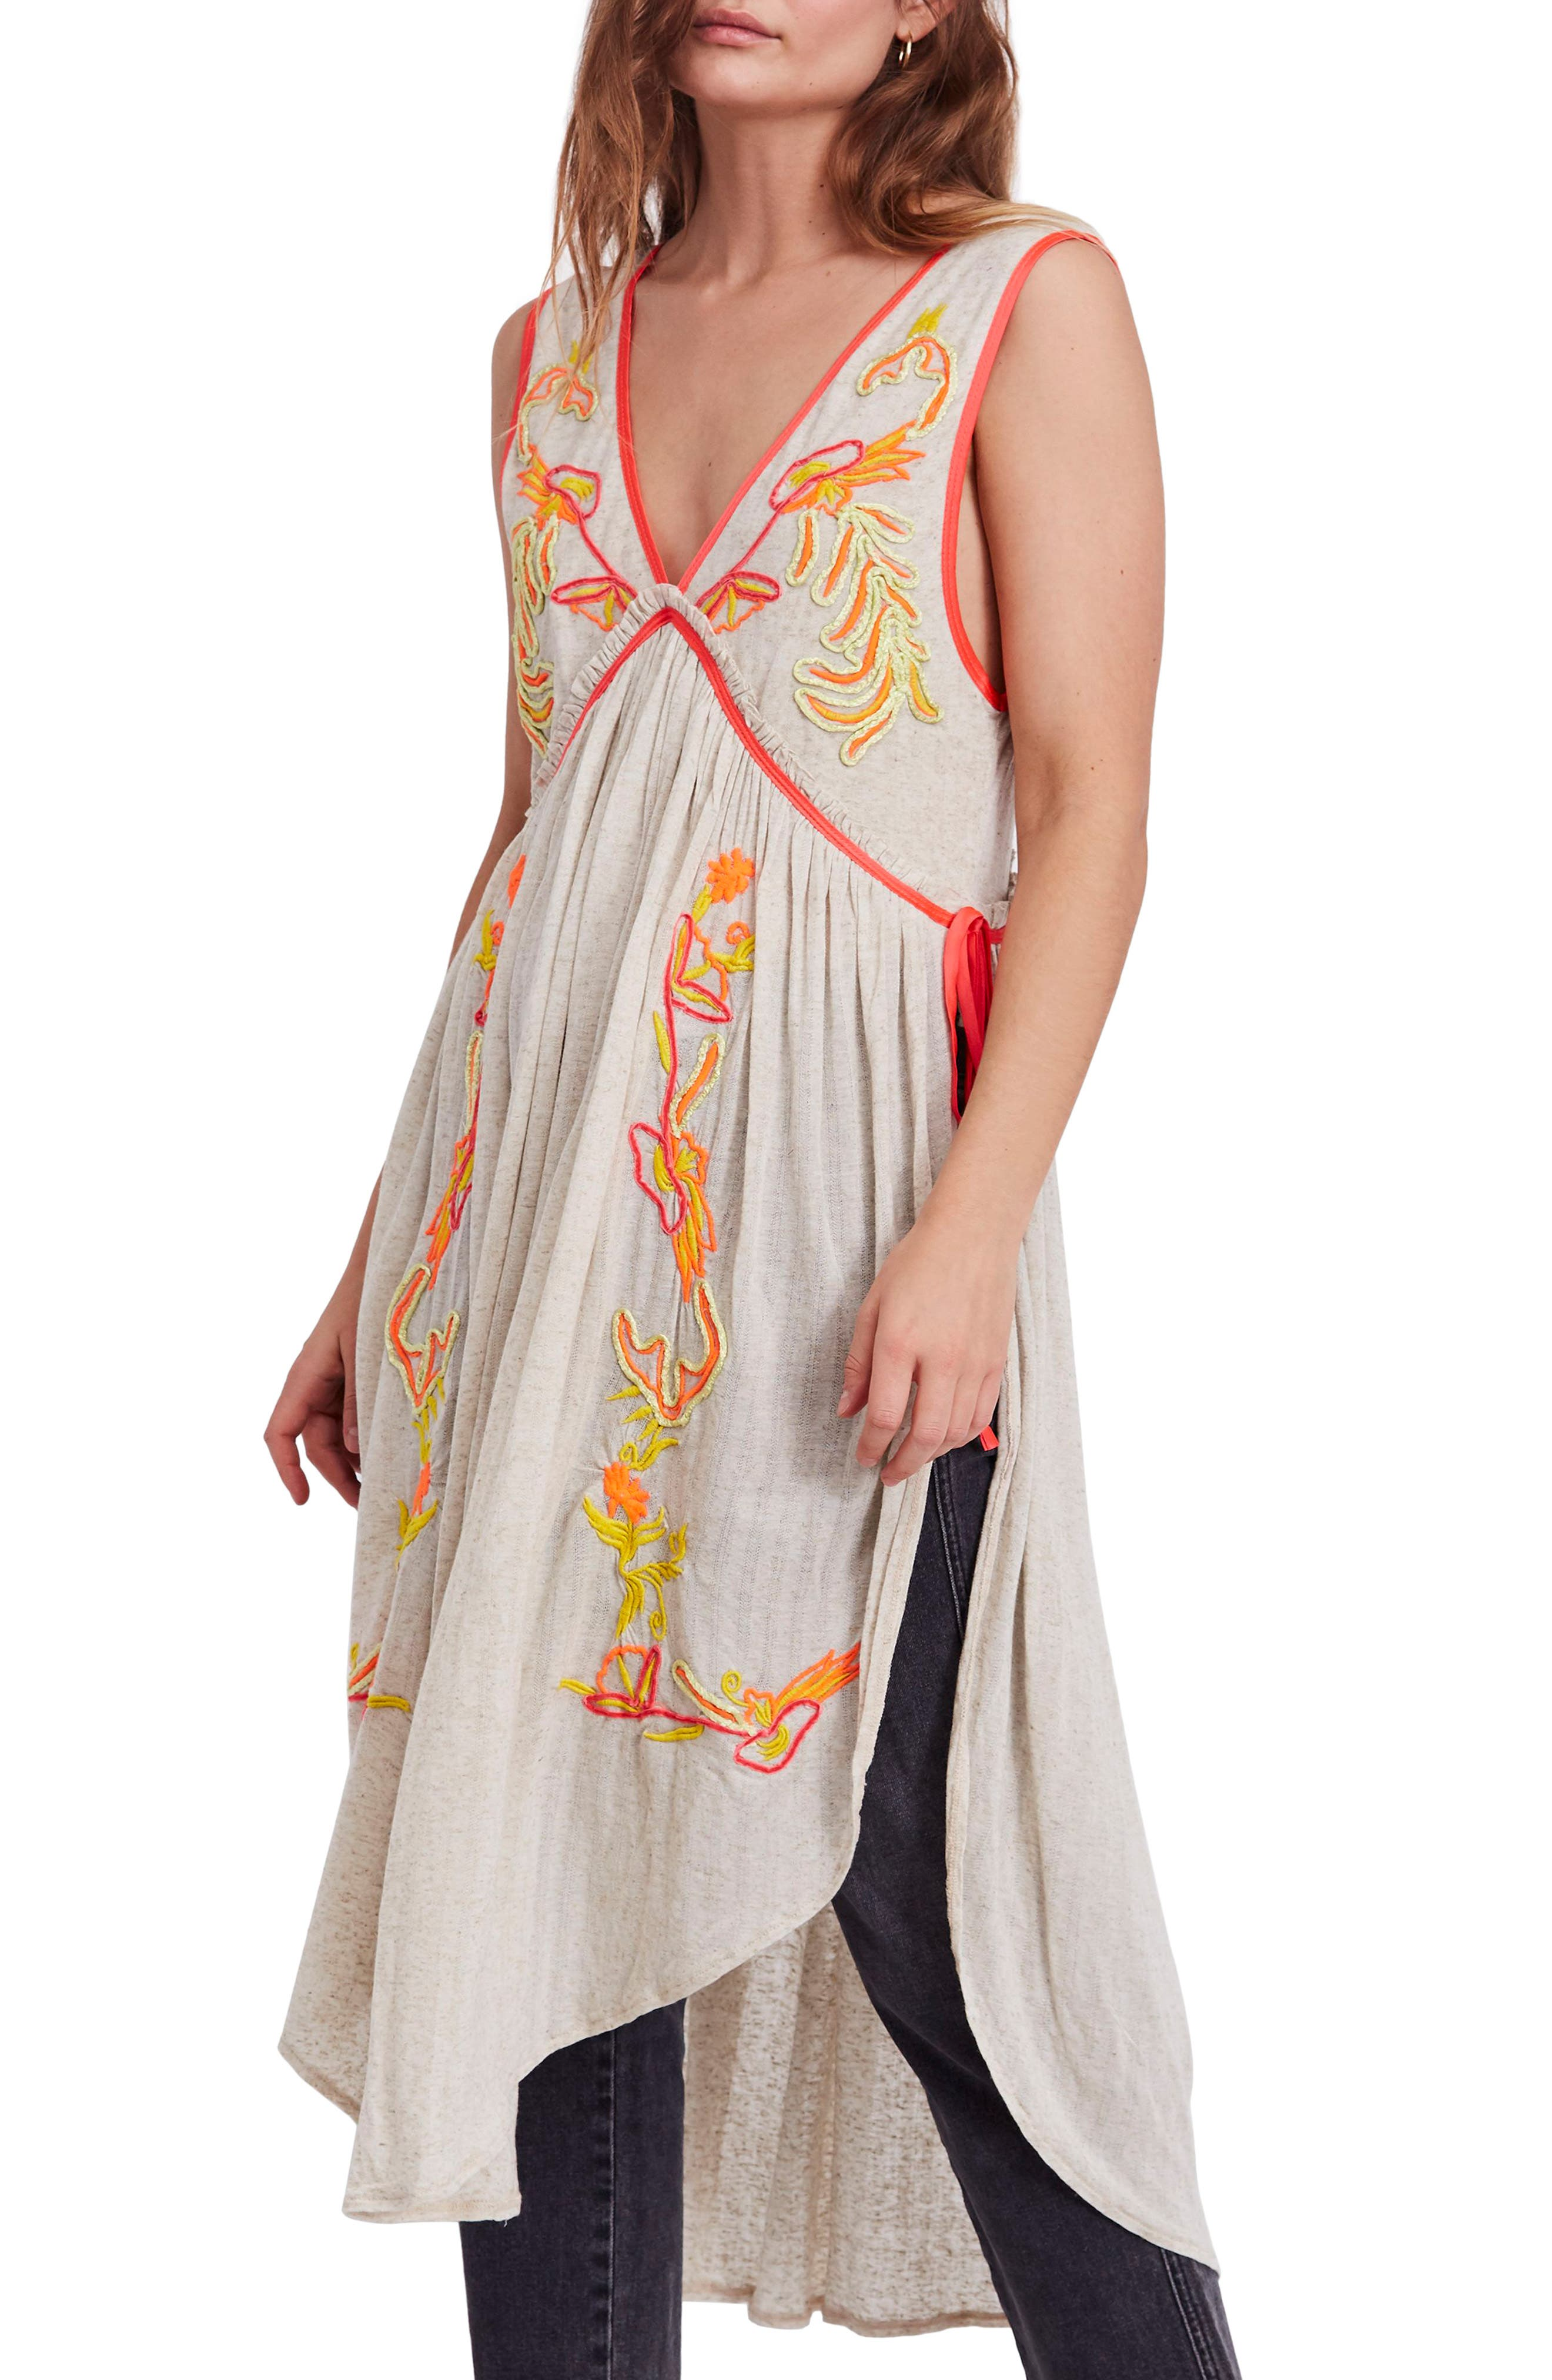 Free People Summer Lovin' Embroidered Tunic